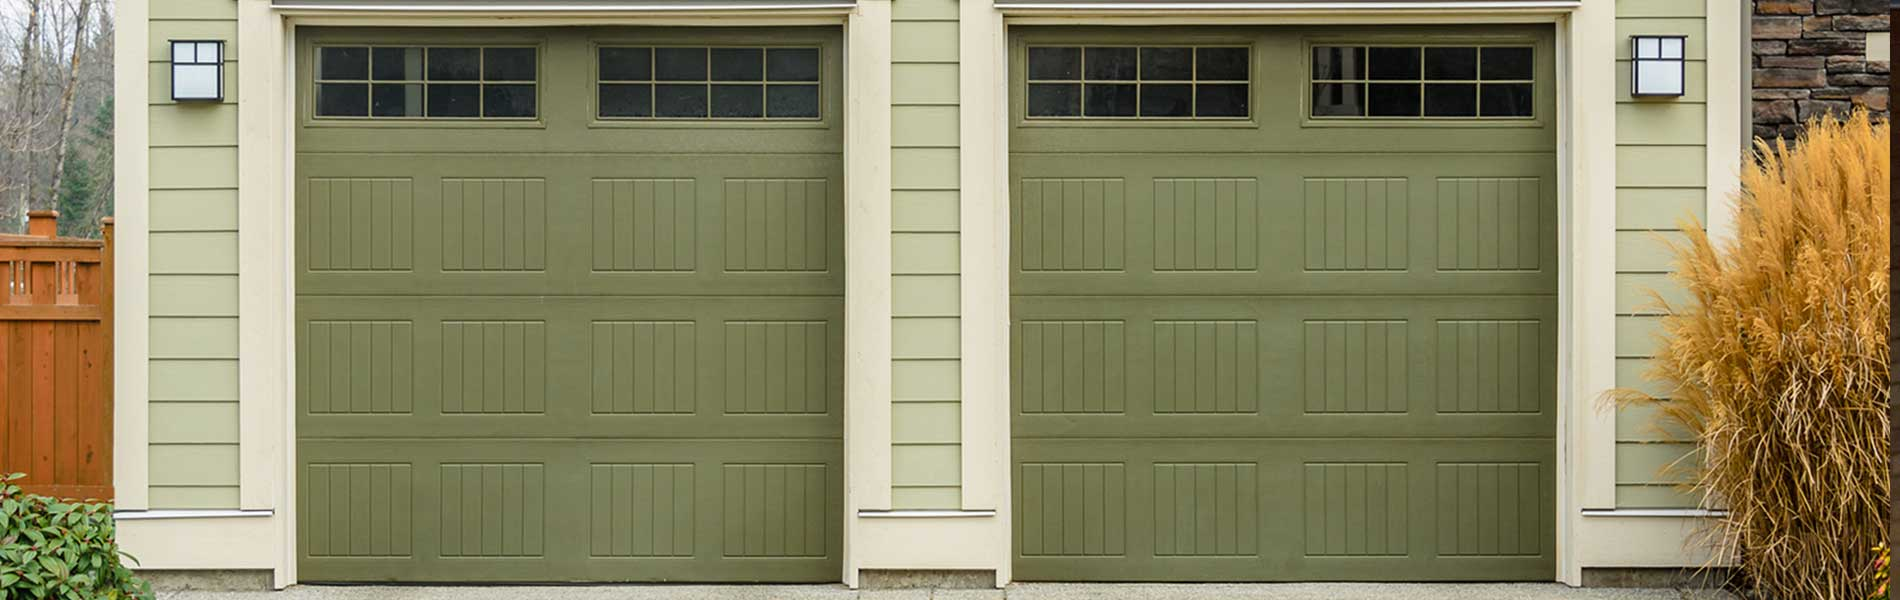 Garage Door 24 Hours Repairs, Needham, MA 781-203-8432